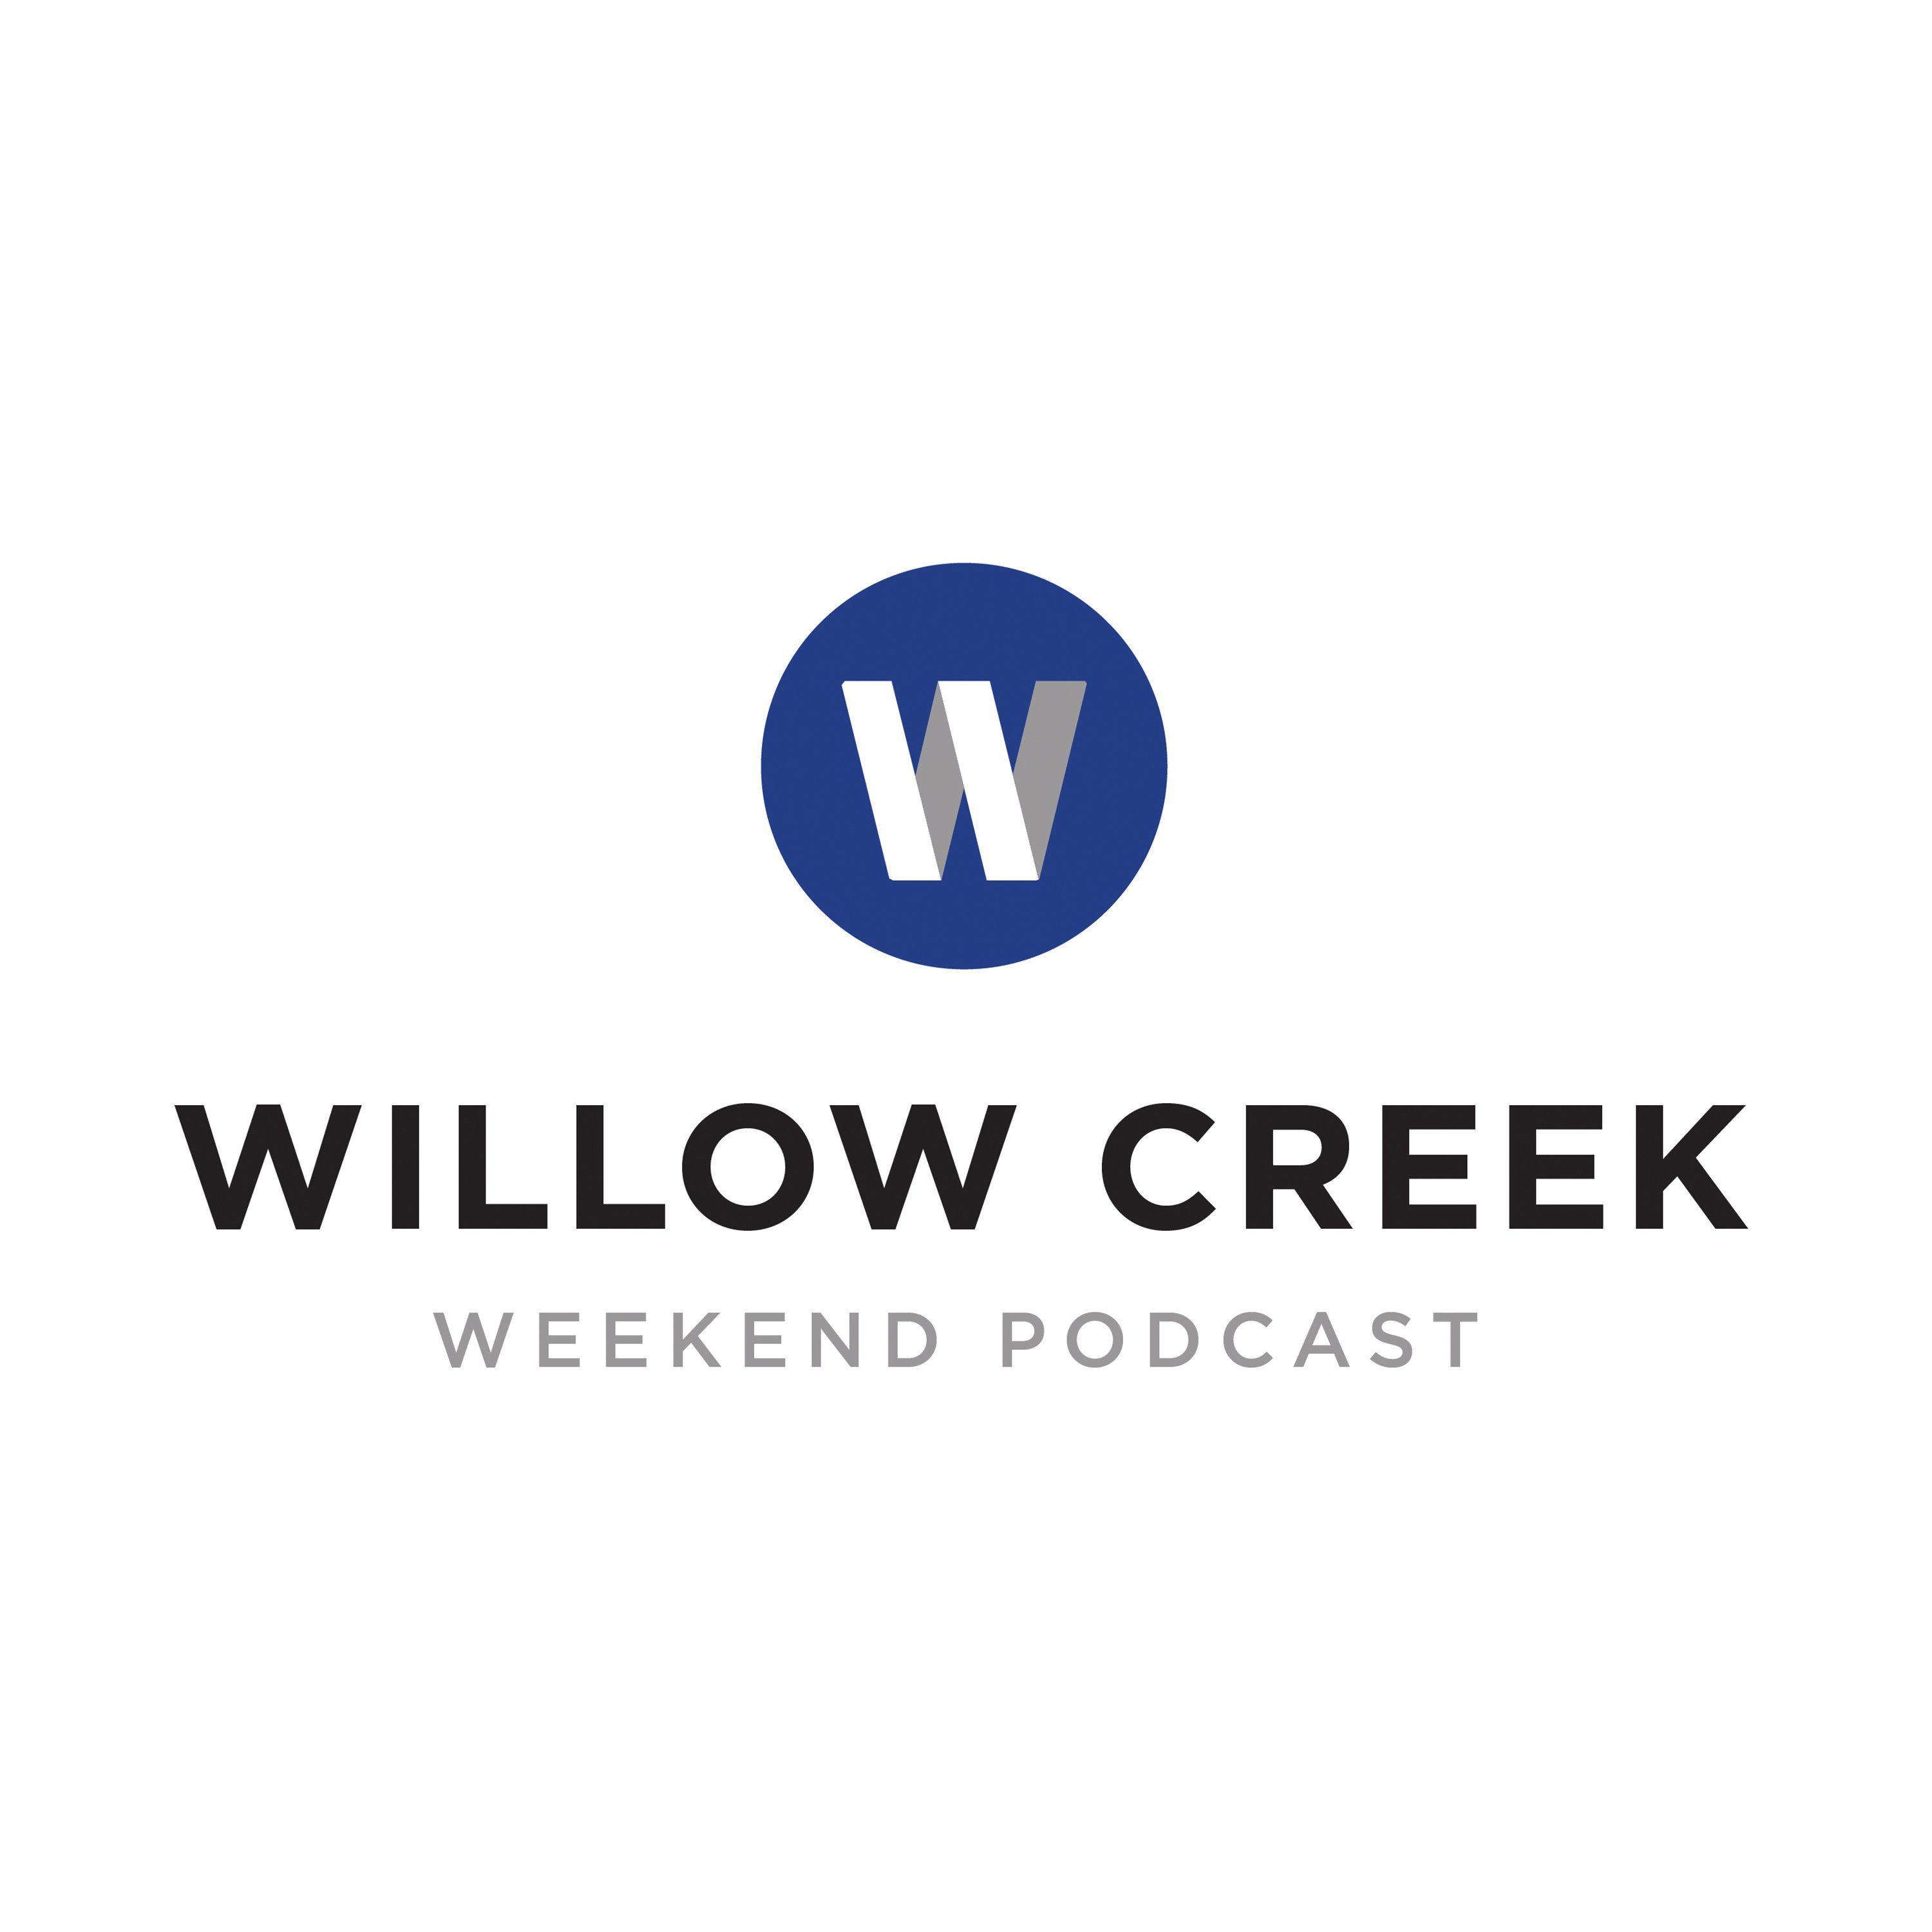 Willow Creek Community Church Weekend Podcast by Willow Creek Community  Church on Apple Podcasts